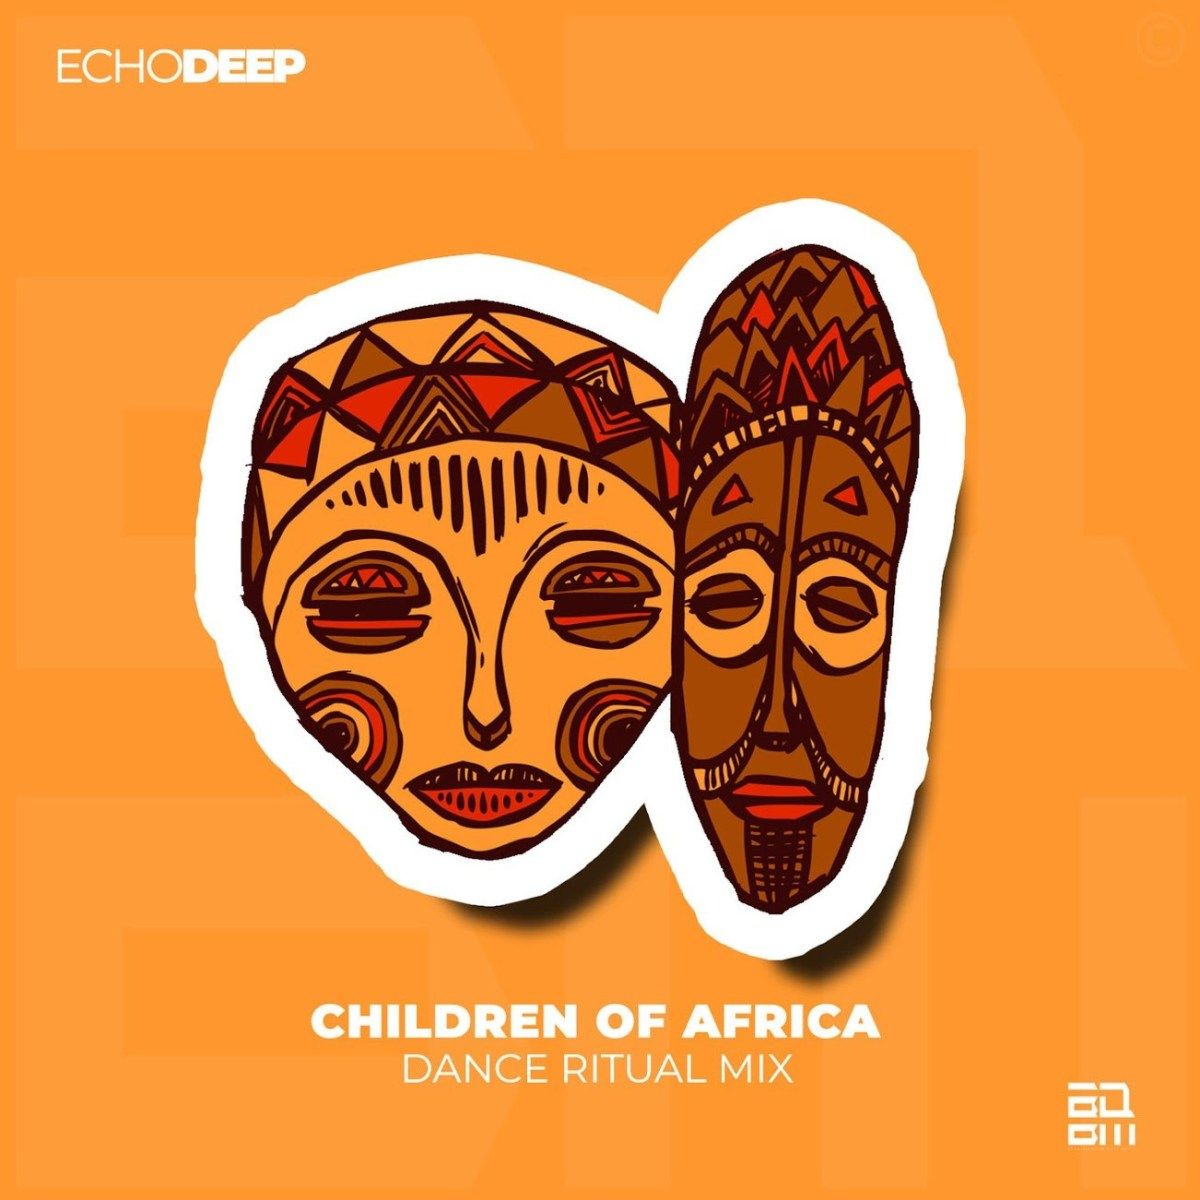 Echo Deep Children Of Africa Remix Africa, Remix, For